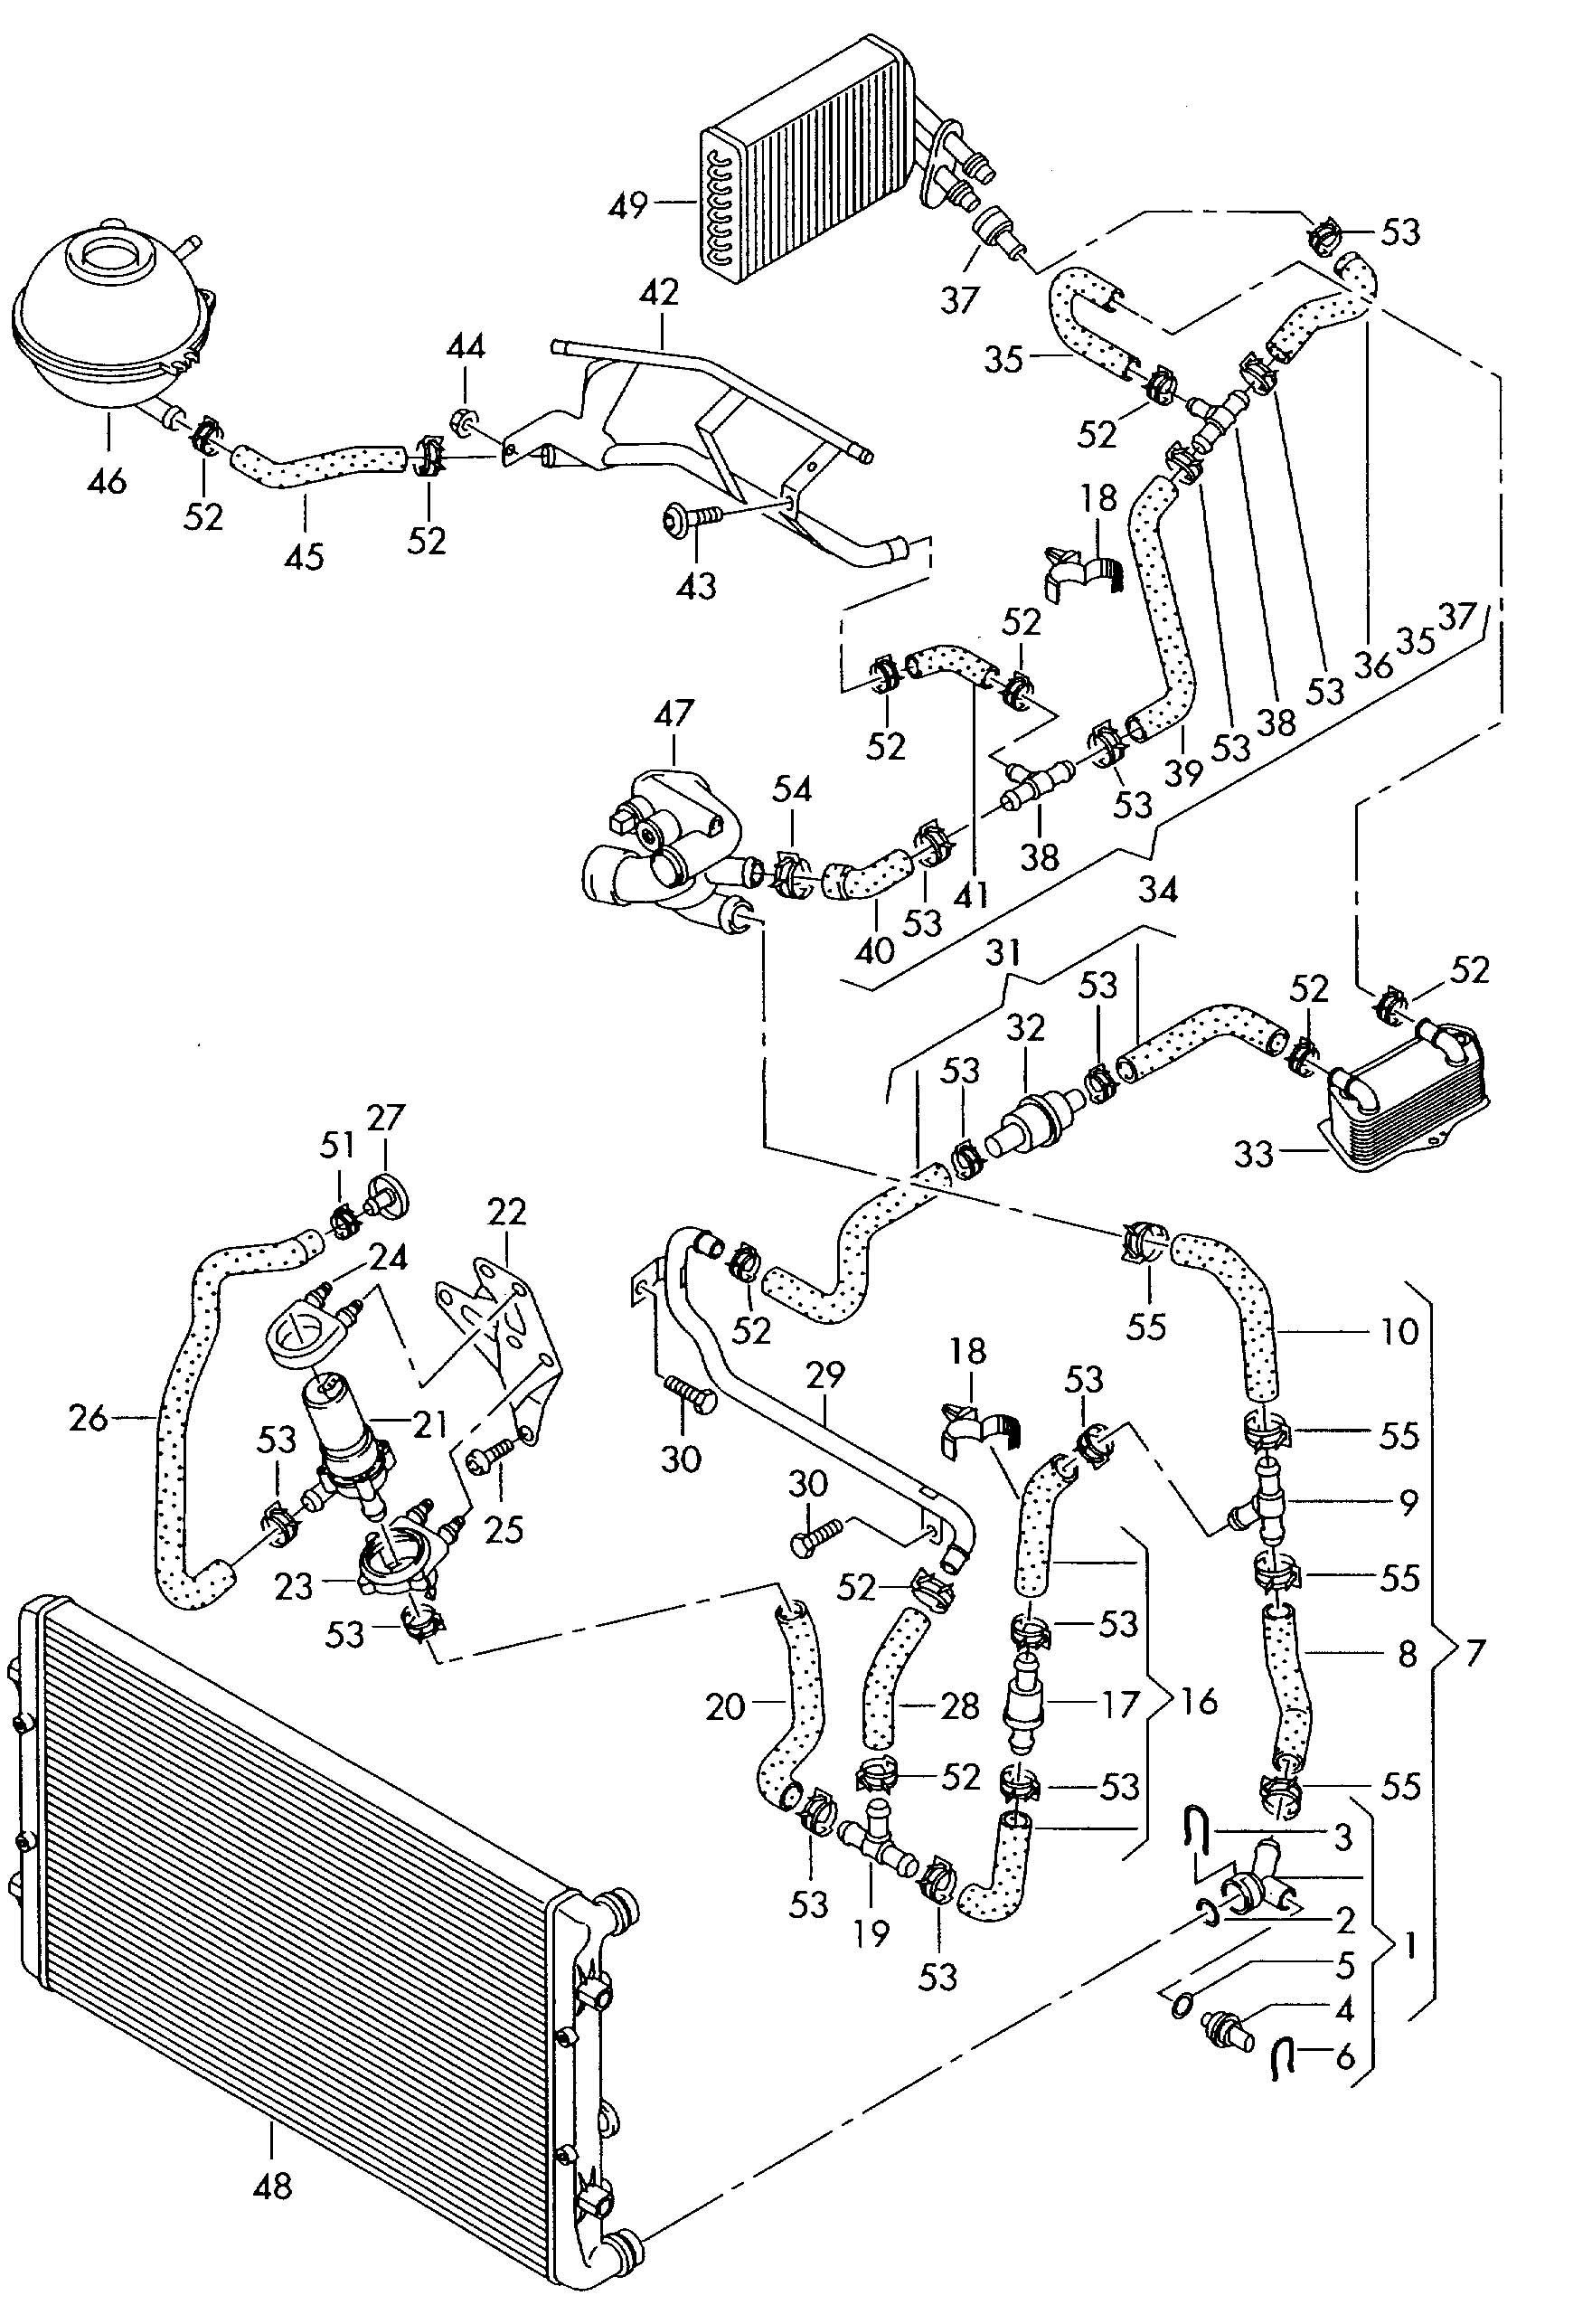 Coolant System Diagram Rover Engine Diagrams Wiring My Audi A3 Cooling Pinterest Of